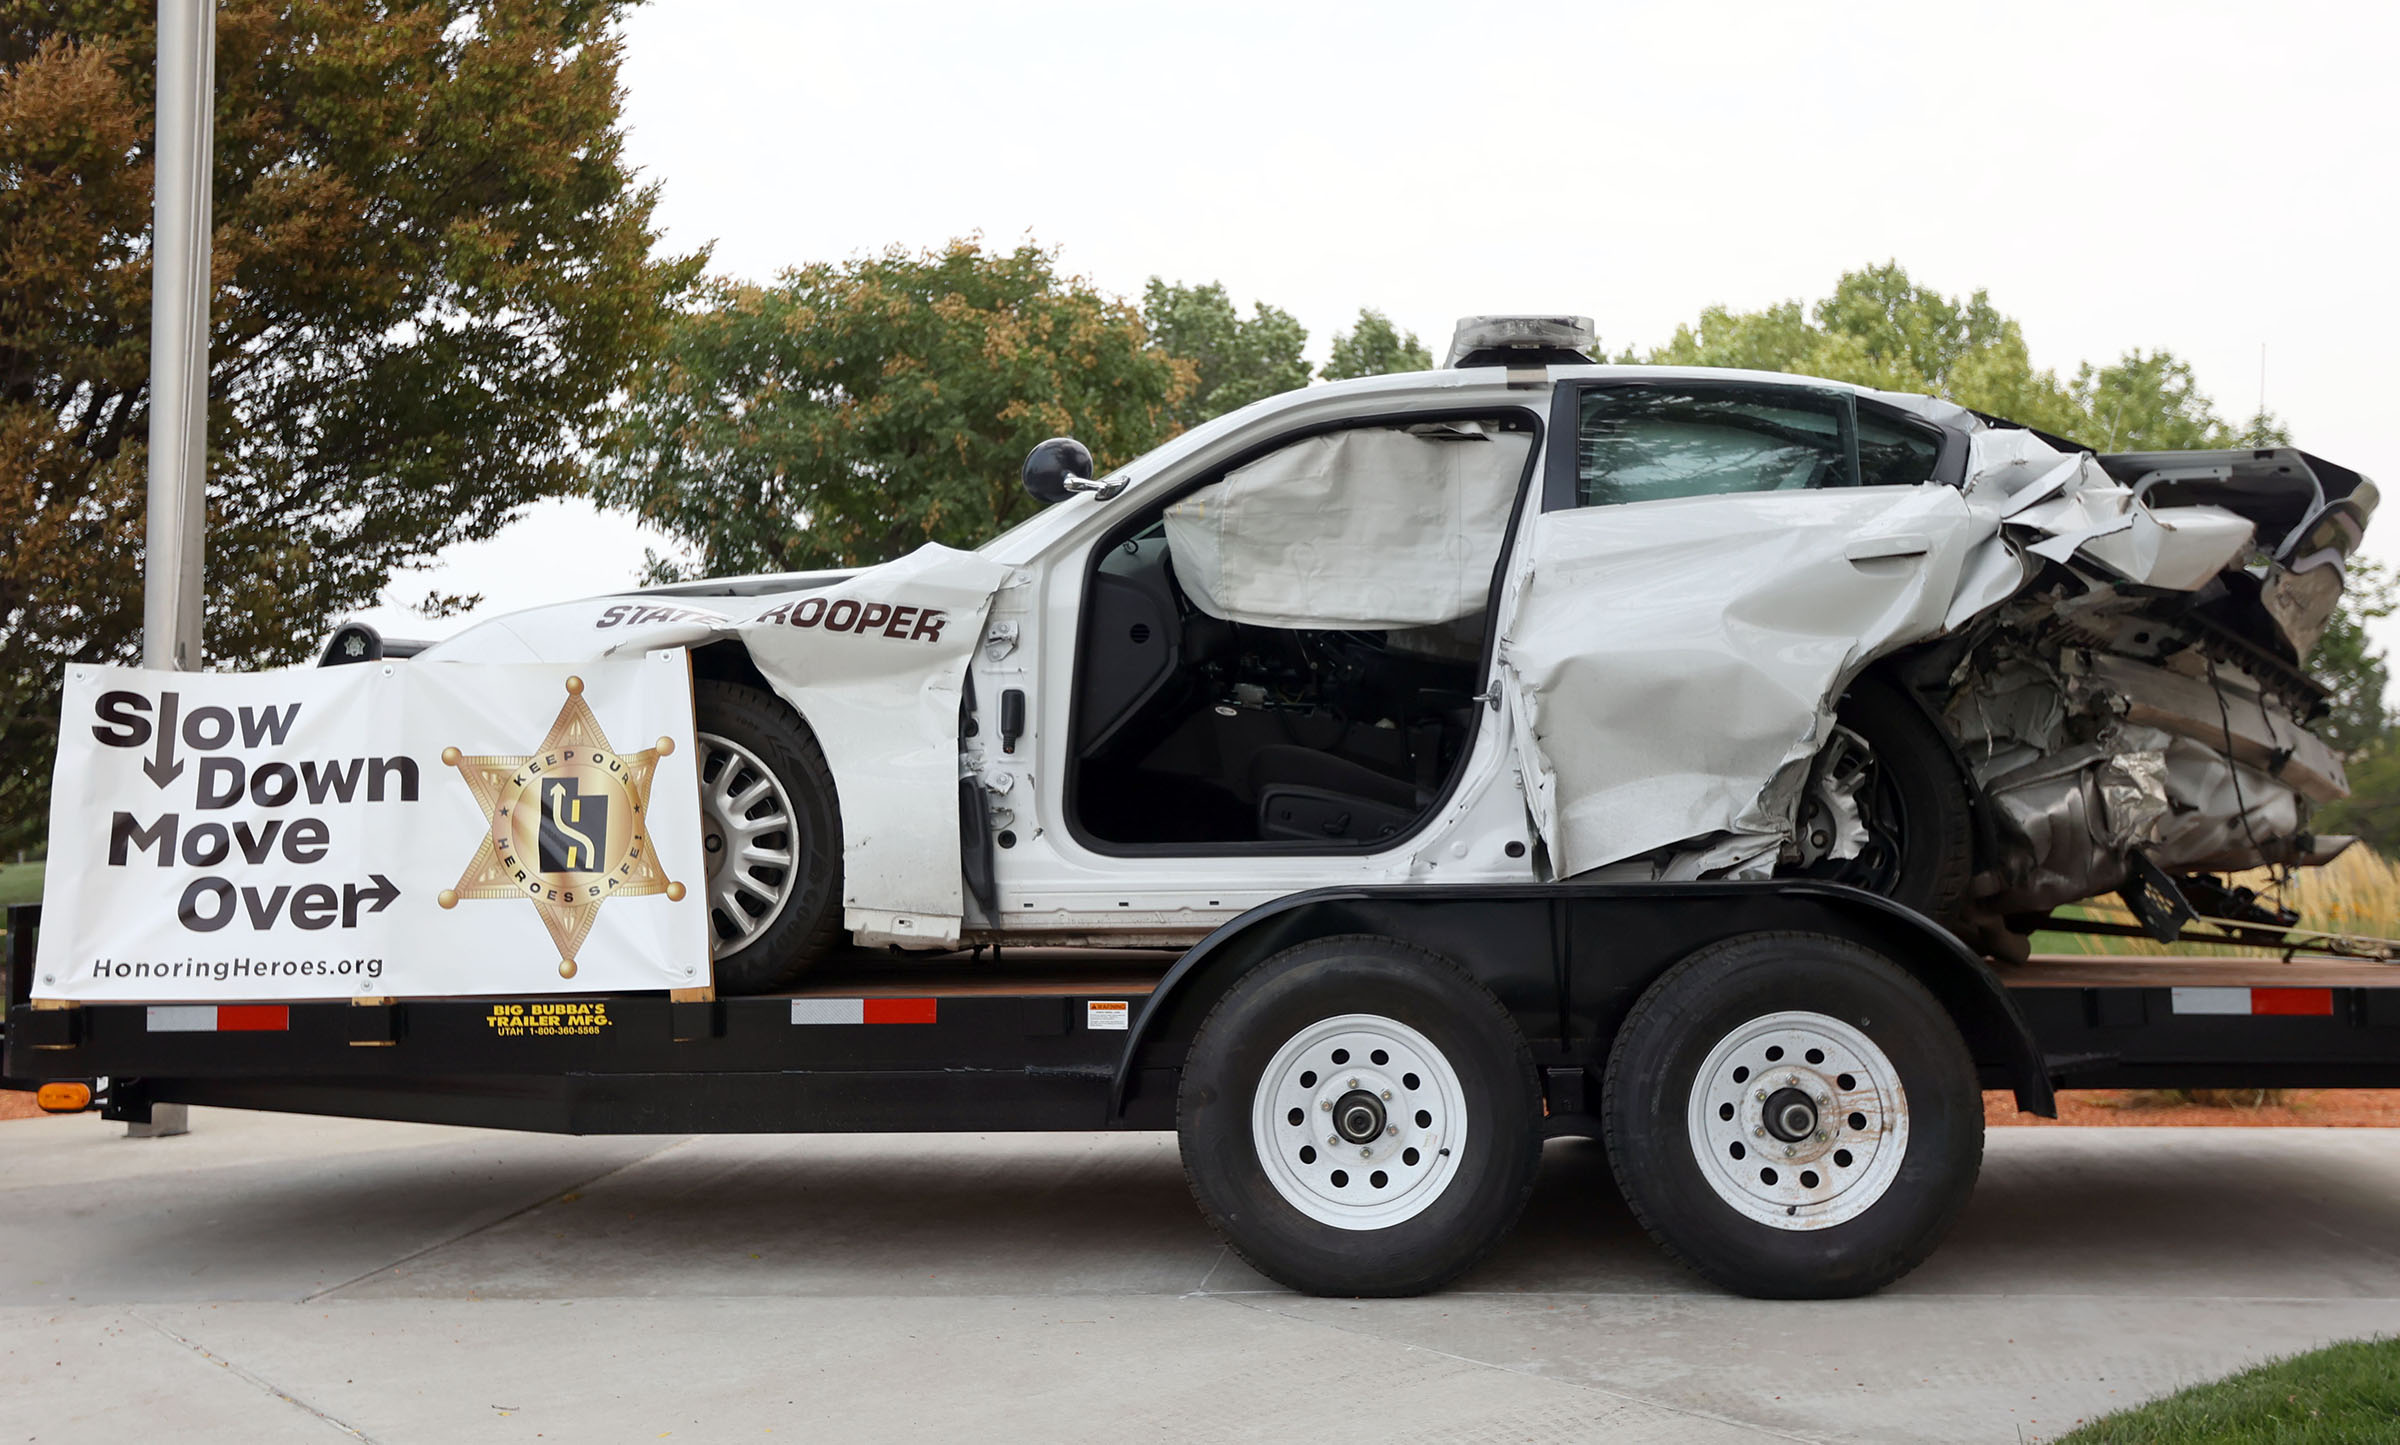 A wrecked Utah Highway Patrol vehicle is pictured outside of UHP headquarters in Taylorsville on Tuesday.